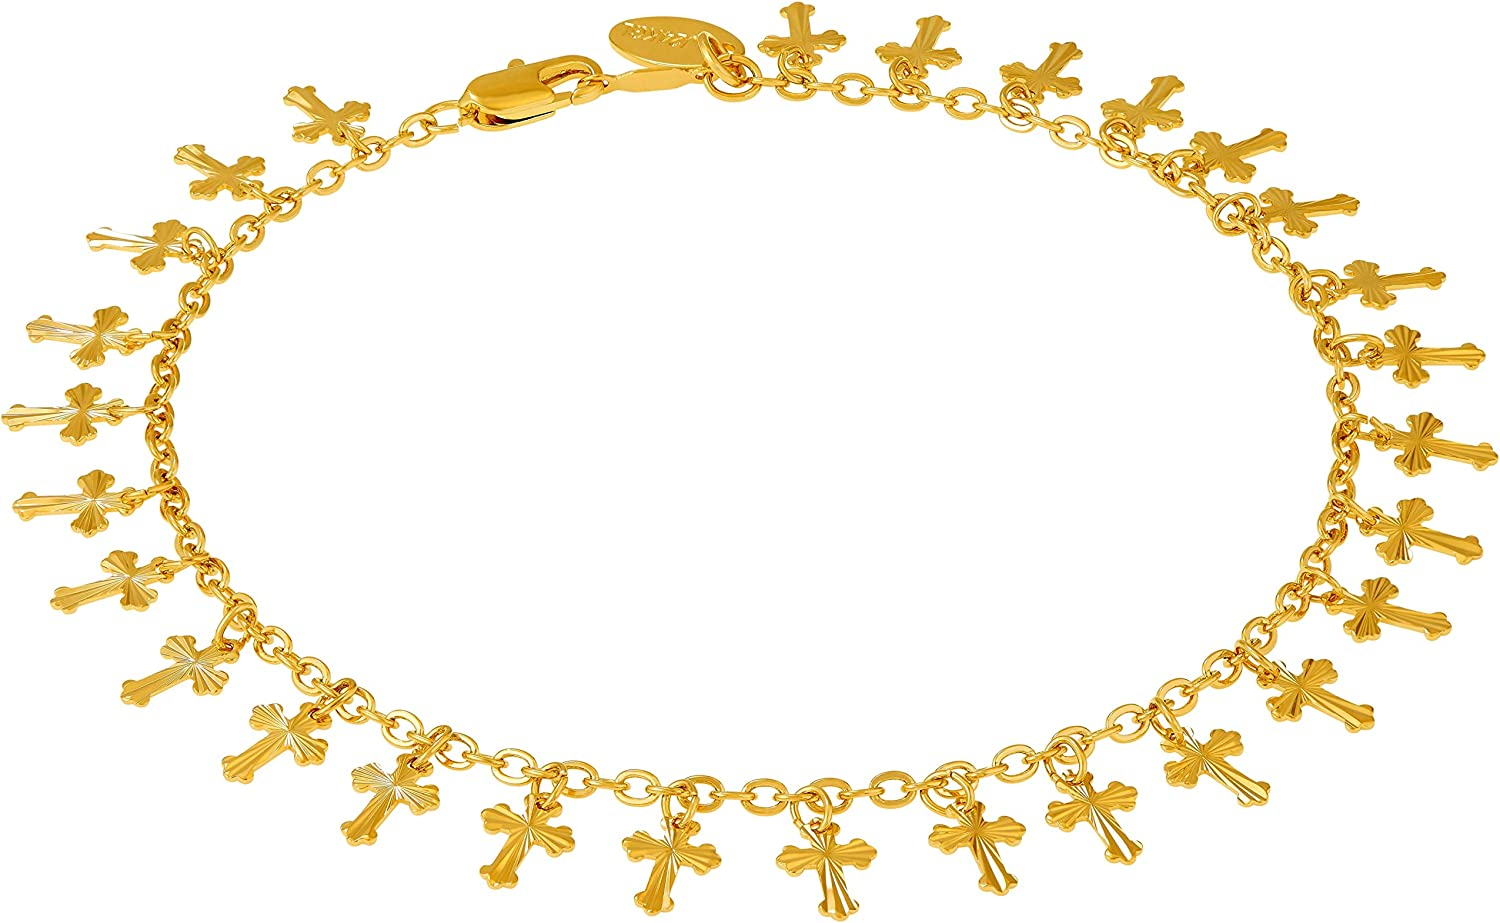 Lifetime Jewelry Gold Ankle Bracelets for Women Teens and Girls [ 24k Plated Dangling Crosses Anklet ] Durable Ankle Bracelet - Cute Foot Jewelry 9 10 11 inch